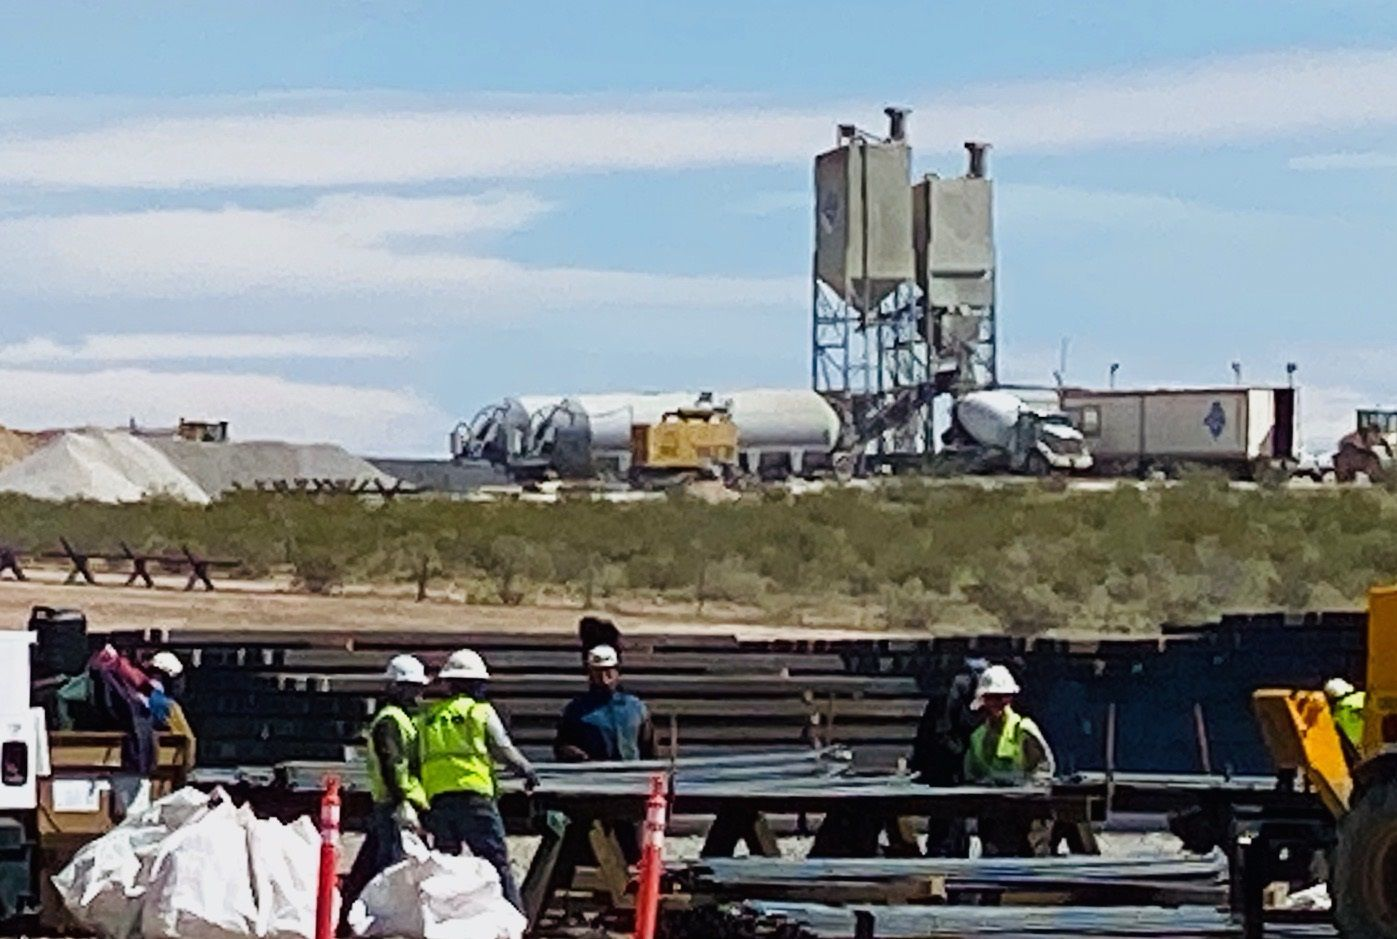 Construction of President Donald Trump's border wall continues as workers defy safe-distancing guidelines set by the White House to halt the spread of coronavirus. Here, clusters of workers toiled on April 1, 2020, just across the Texas border along Highway 9, between El Paso and Columbus, N.M.